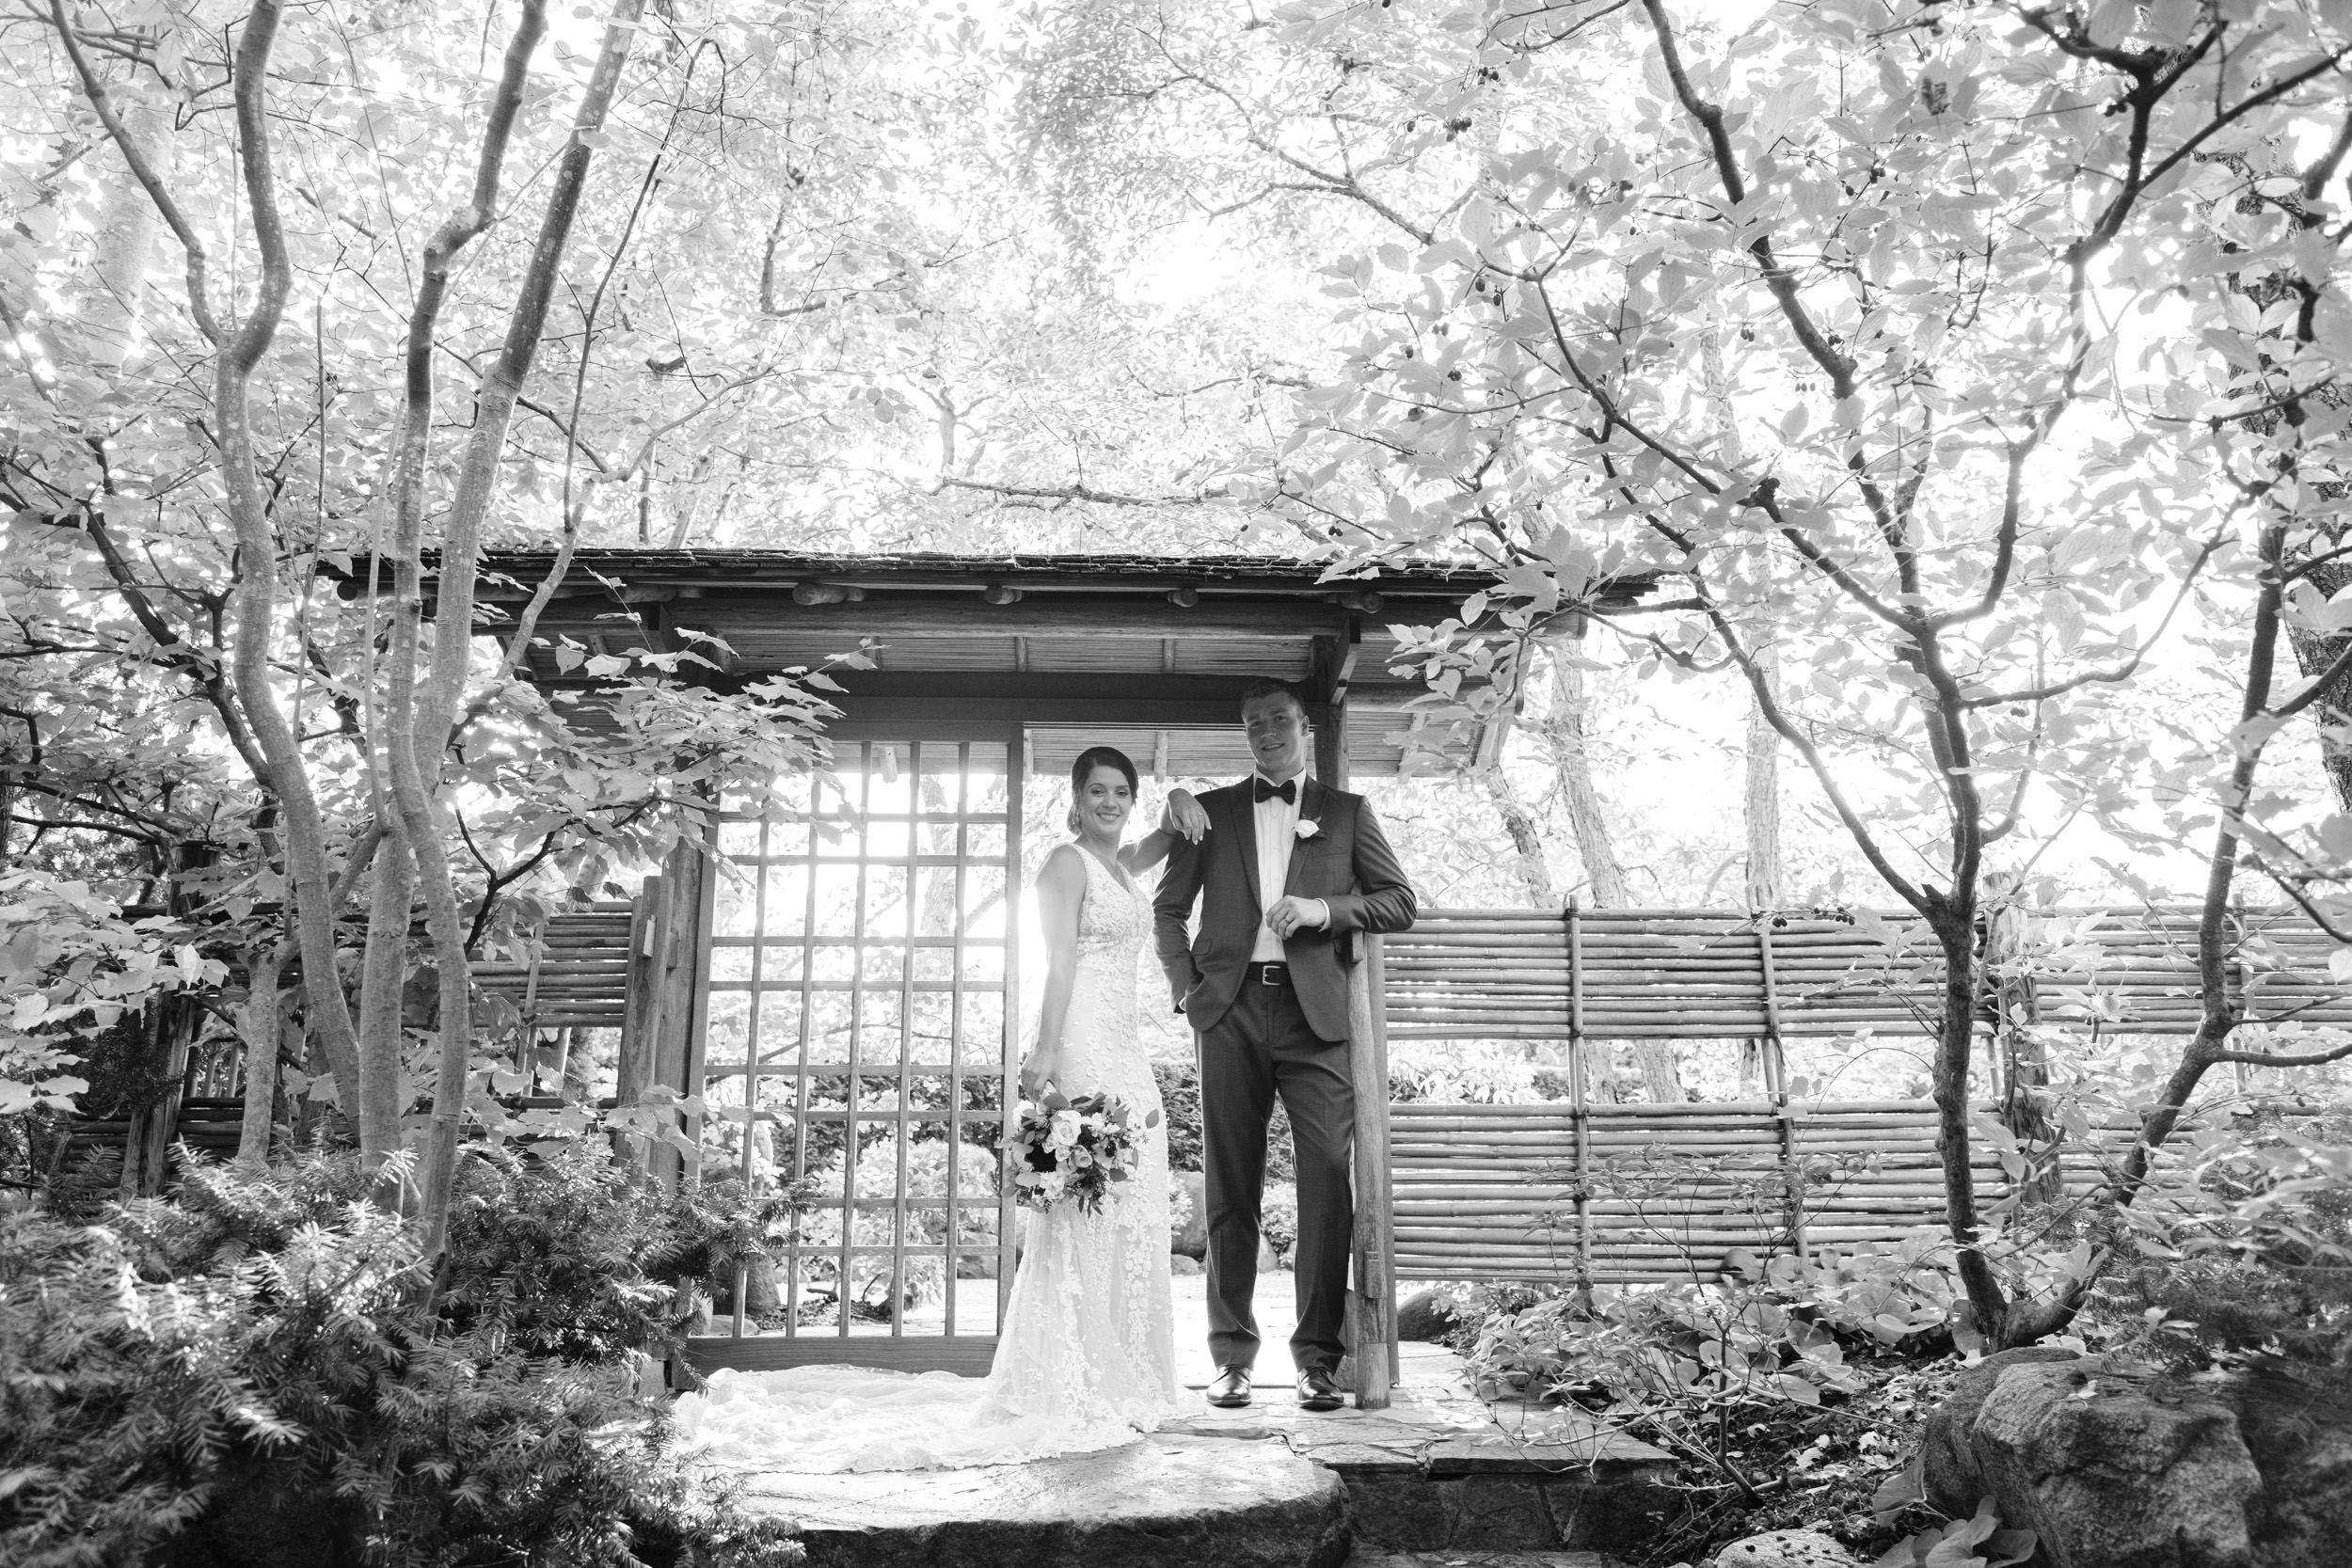 black and white photo of bride and groom with sun behind them under Japanese archway